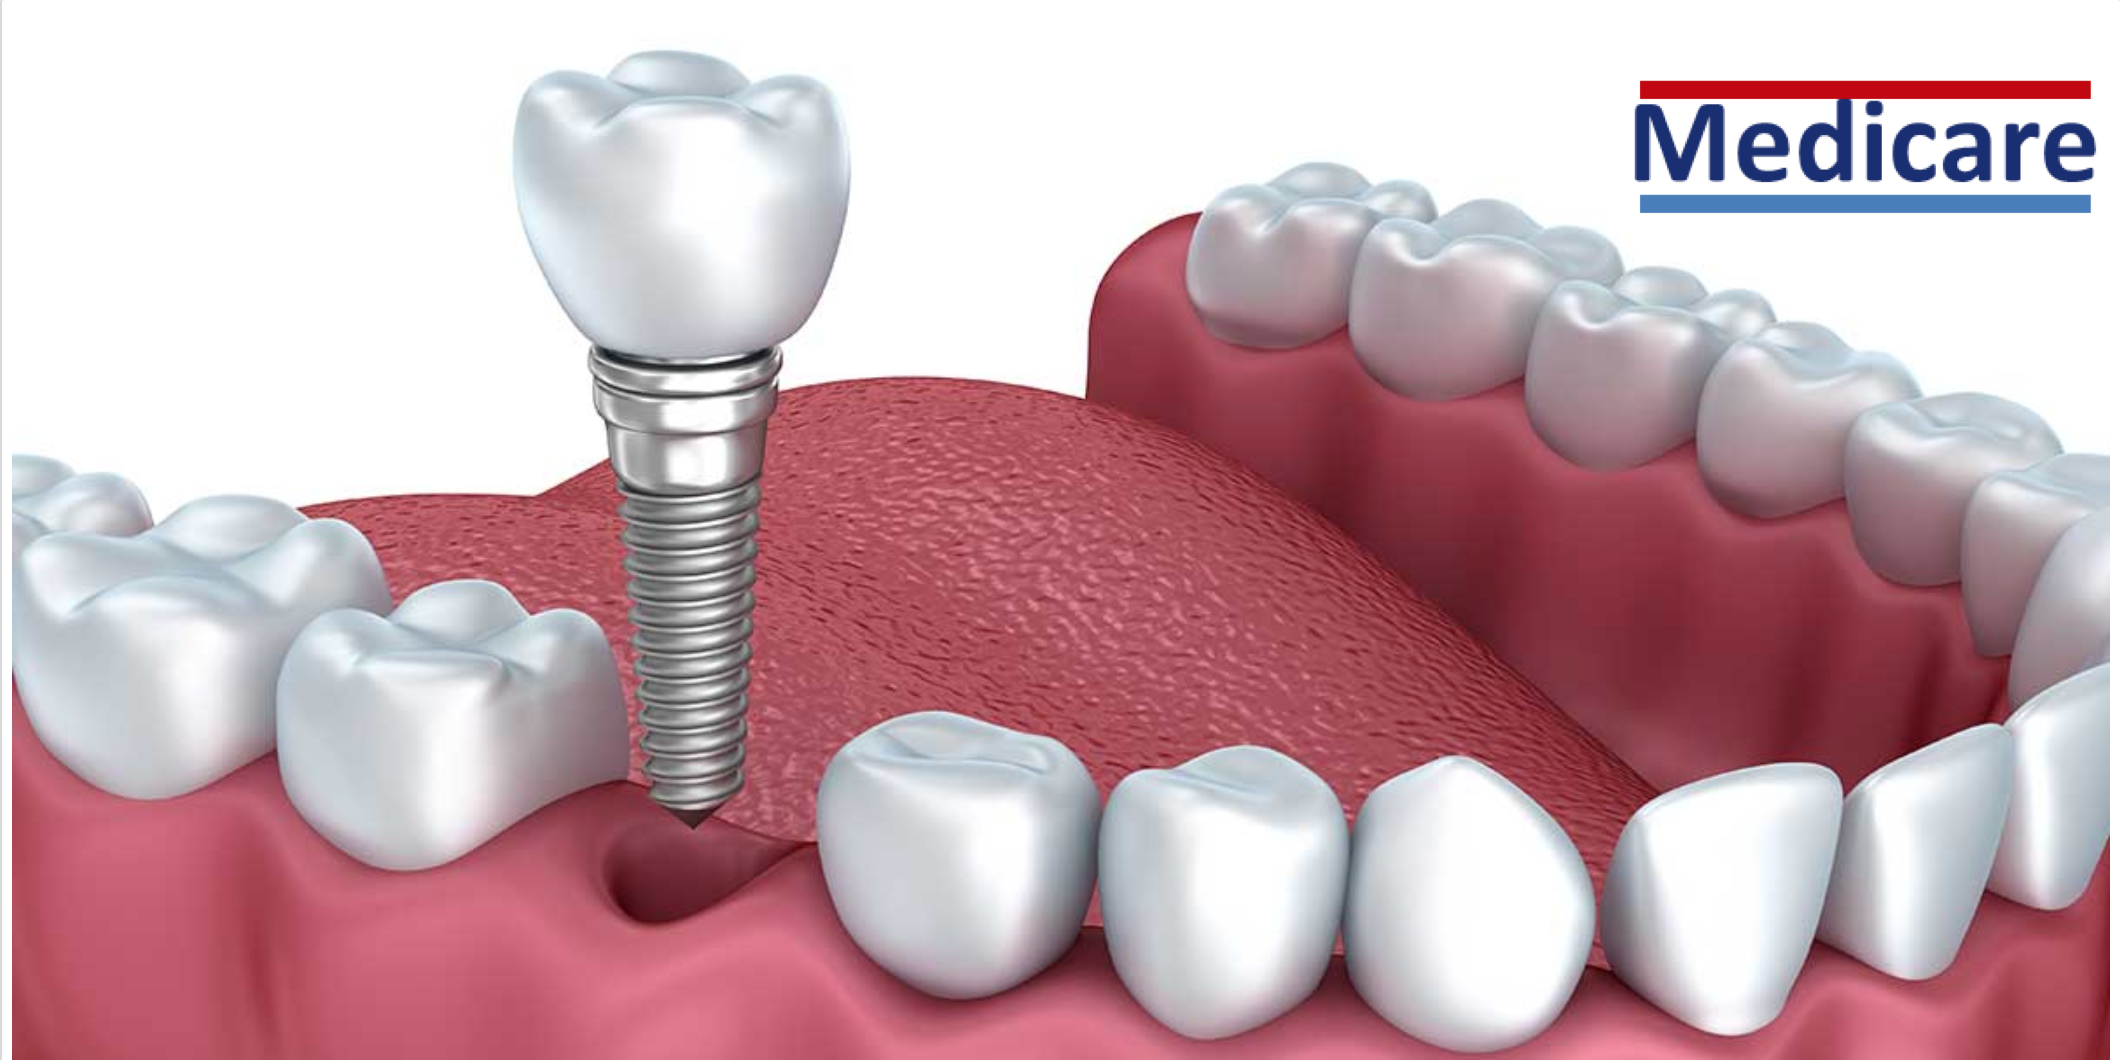 Dental Implant Covered By Medicare